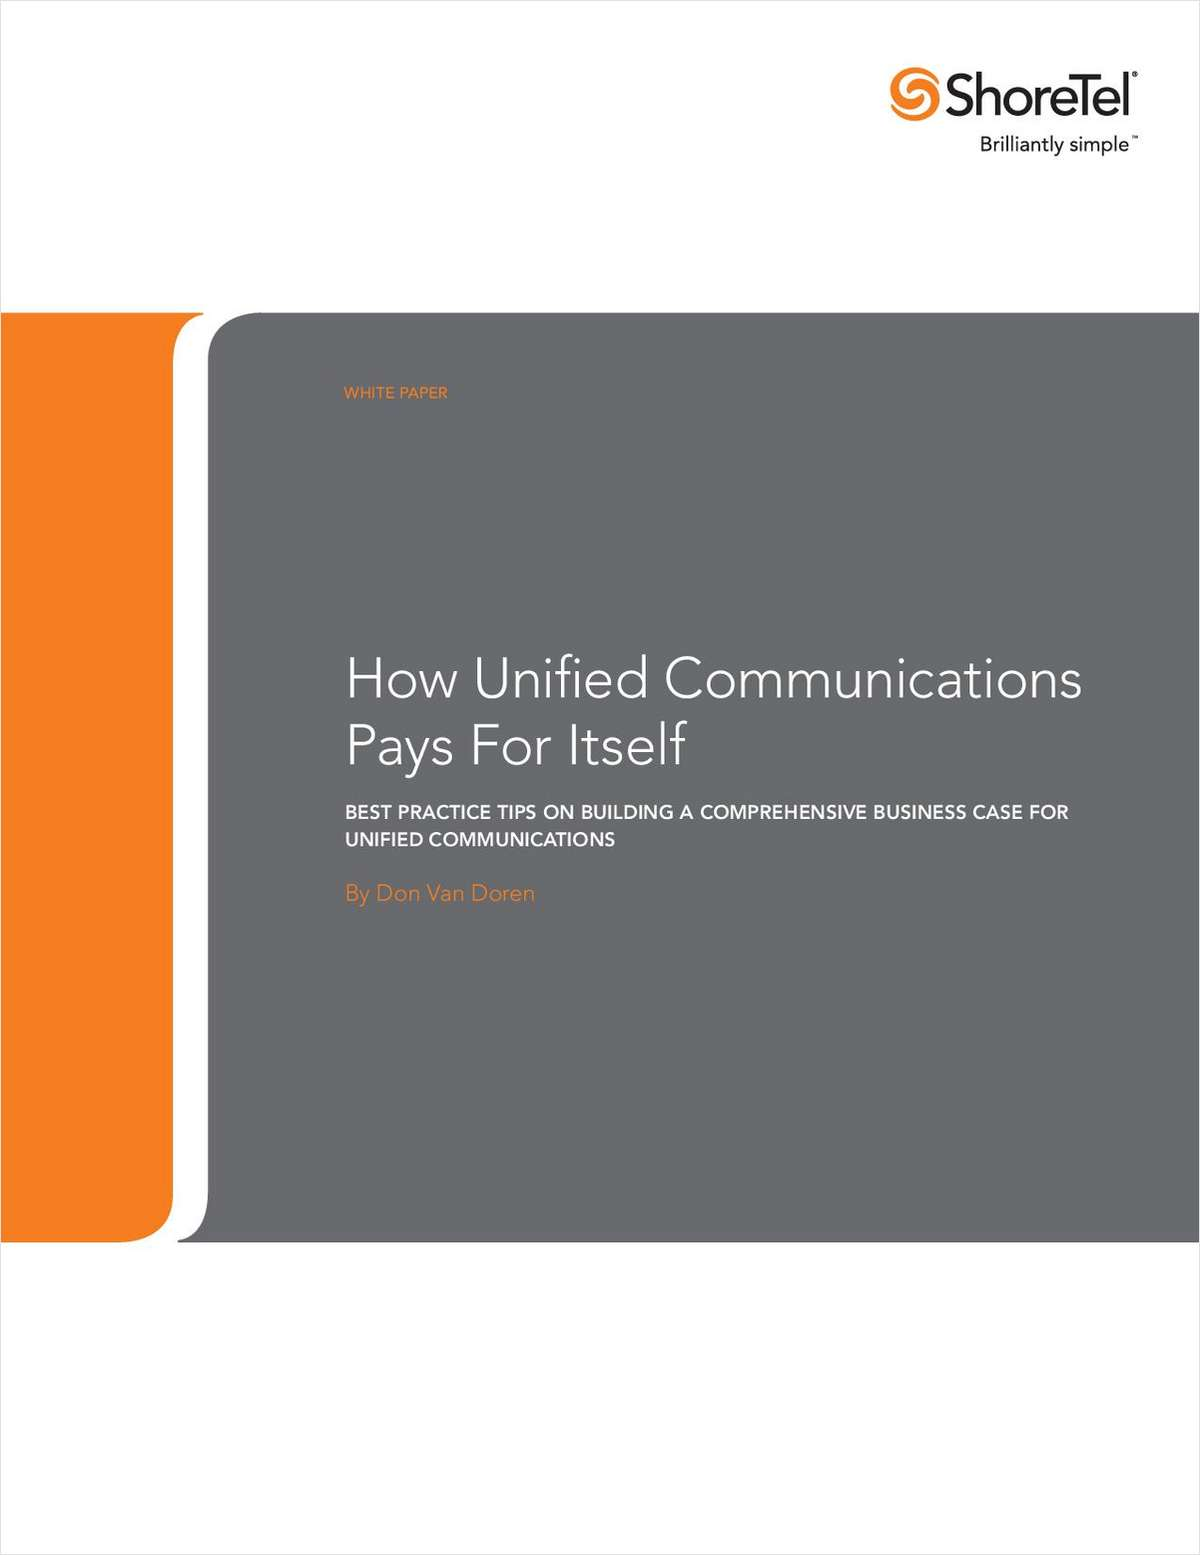 Best Practice Tips on Building a Unified Communications Business Case